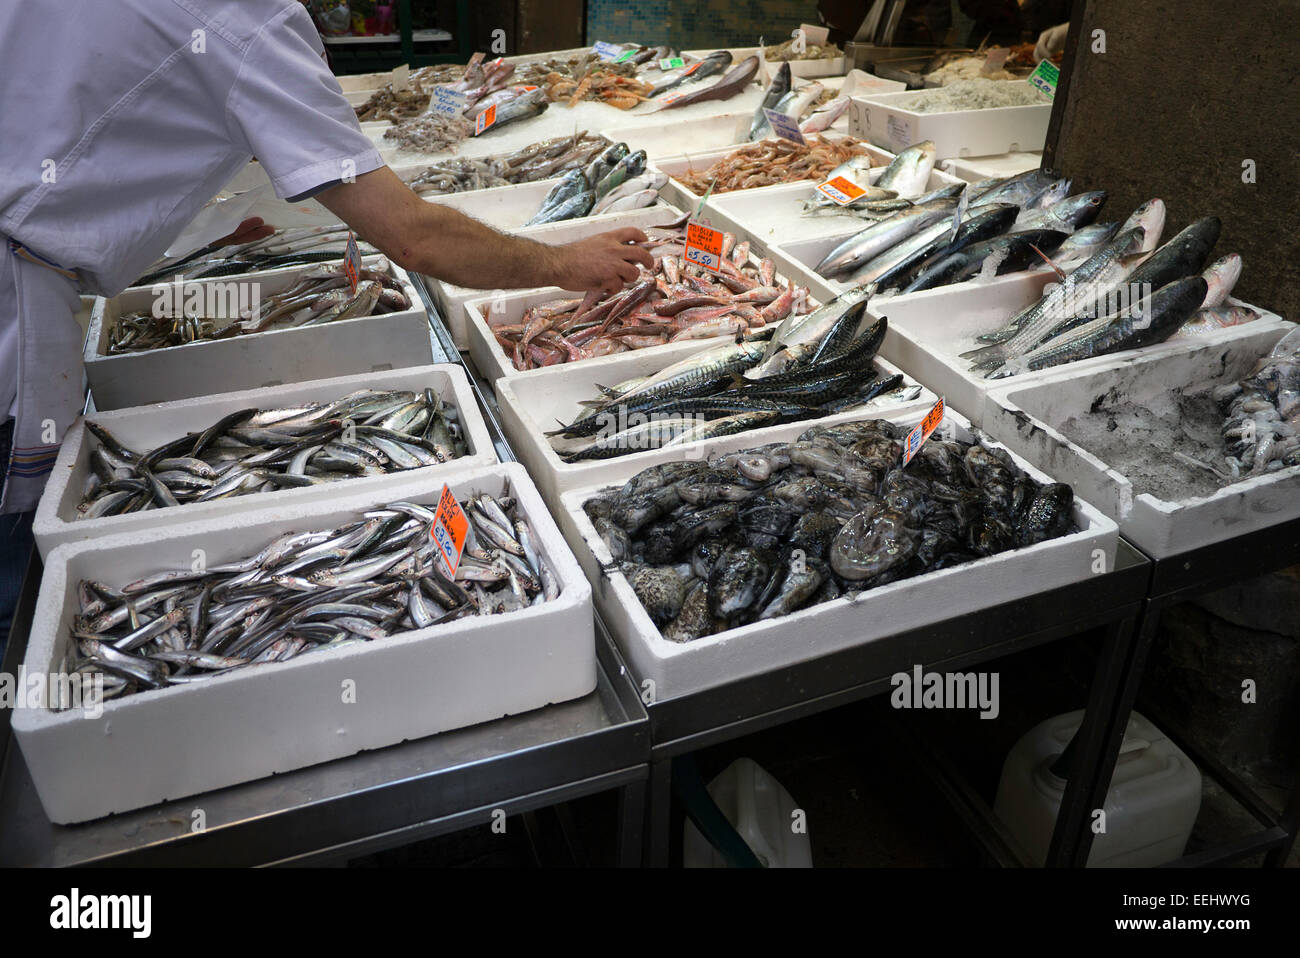 Fresh fish, including anchovies, on ice in boxes at a fish stall on Via Pescherie Vecchie, in Bologna, Italy. - Stock Image